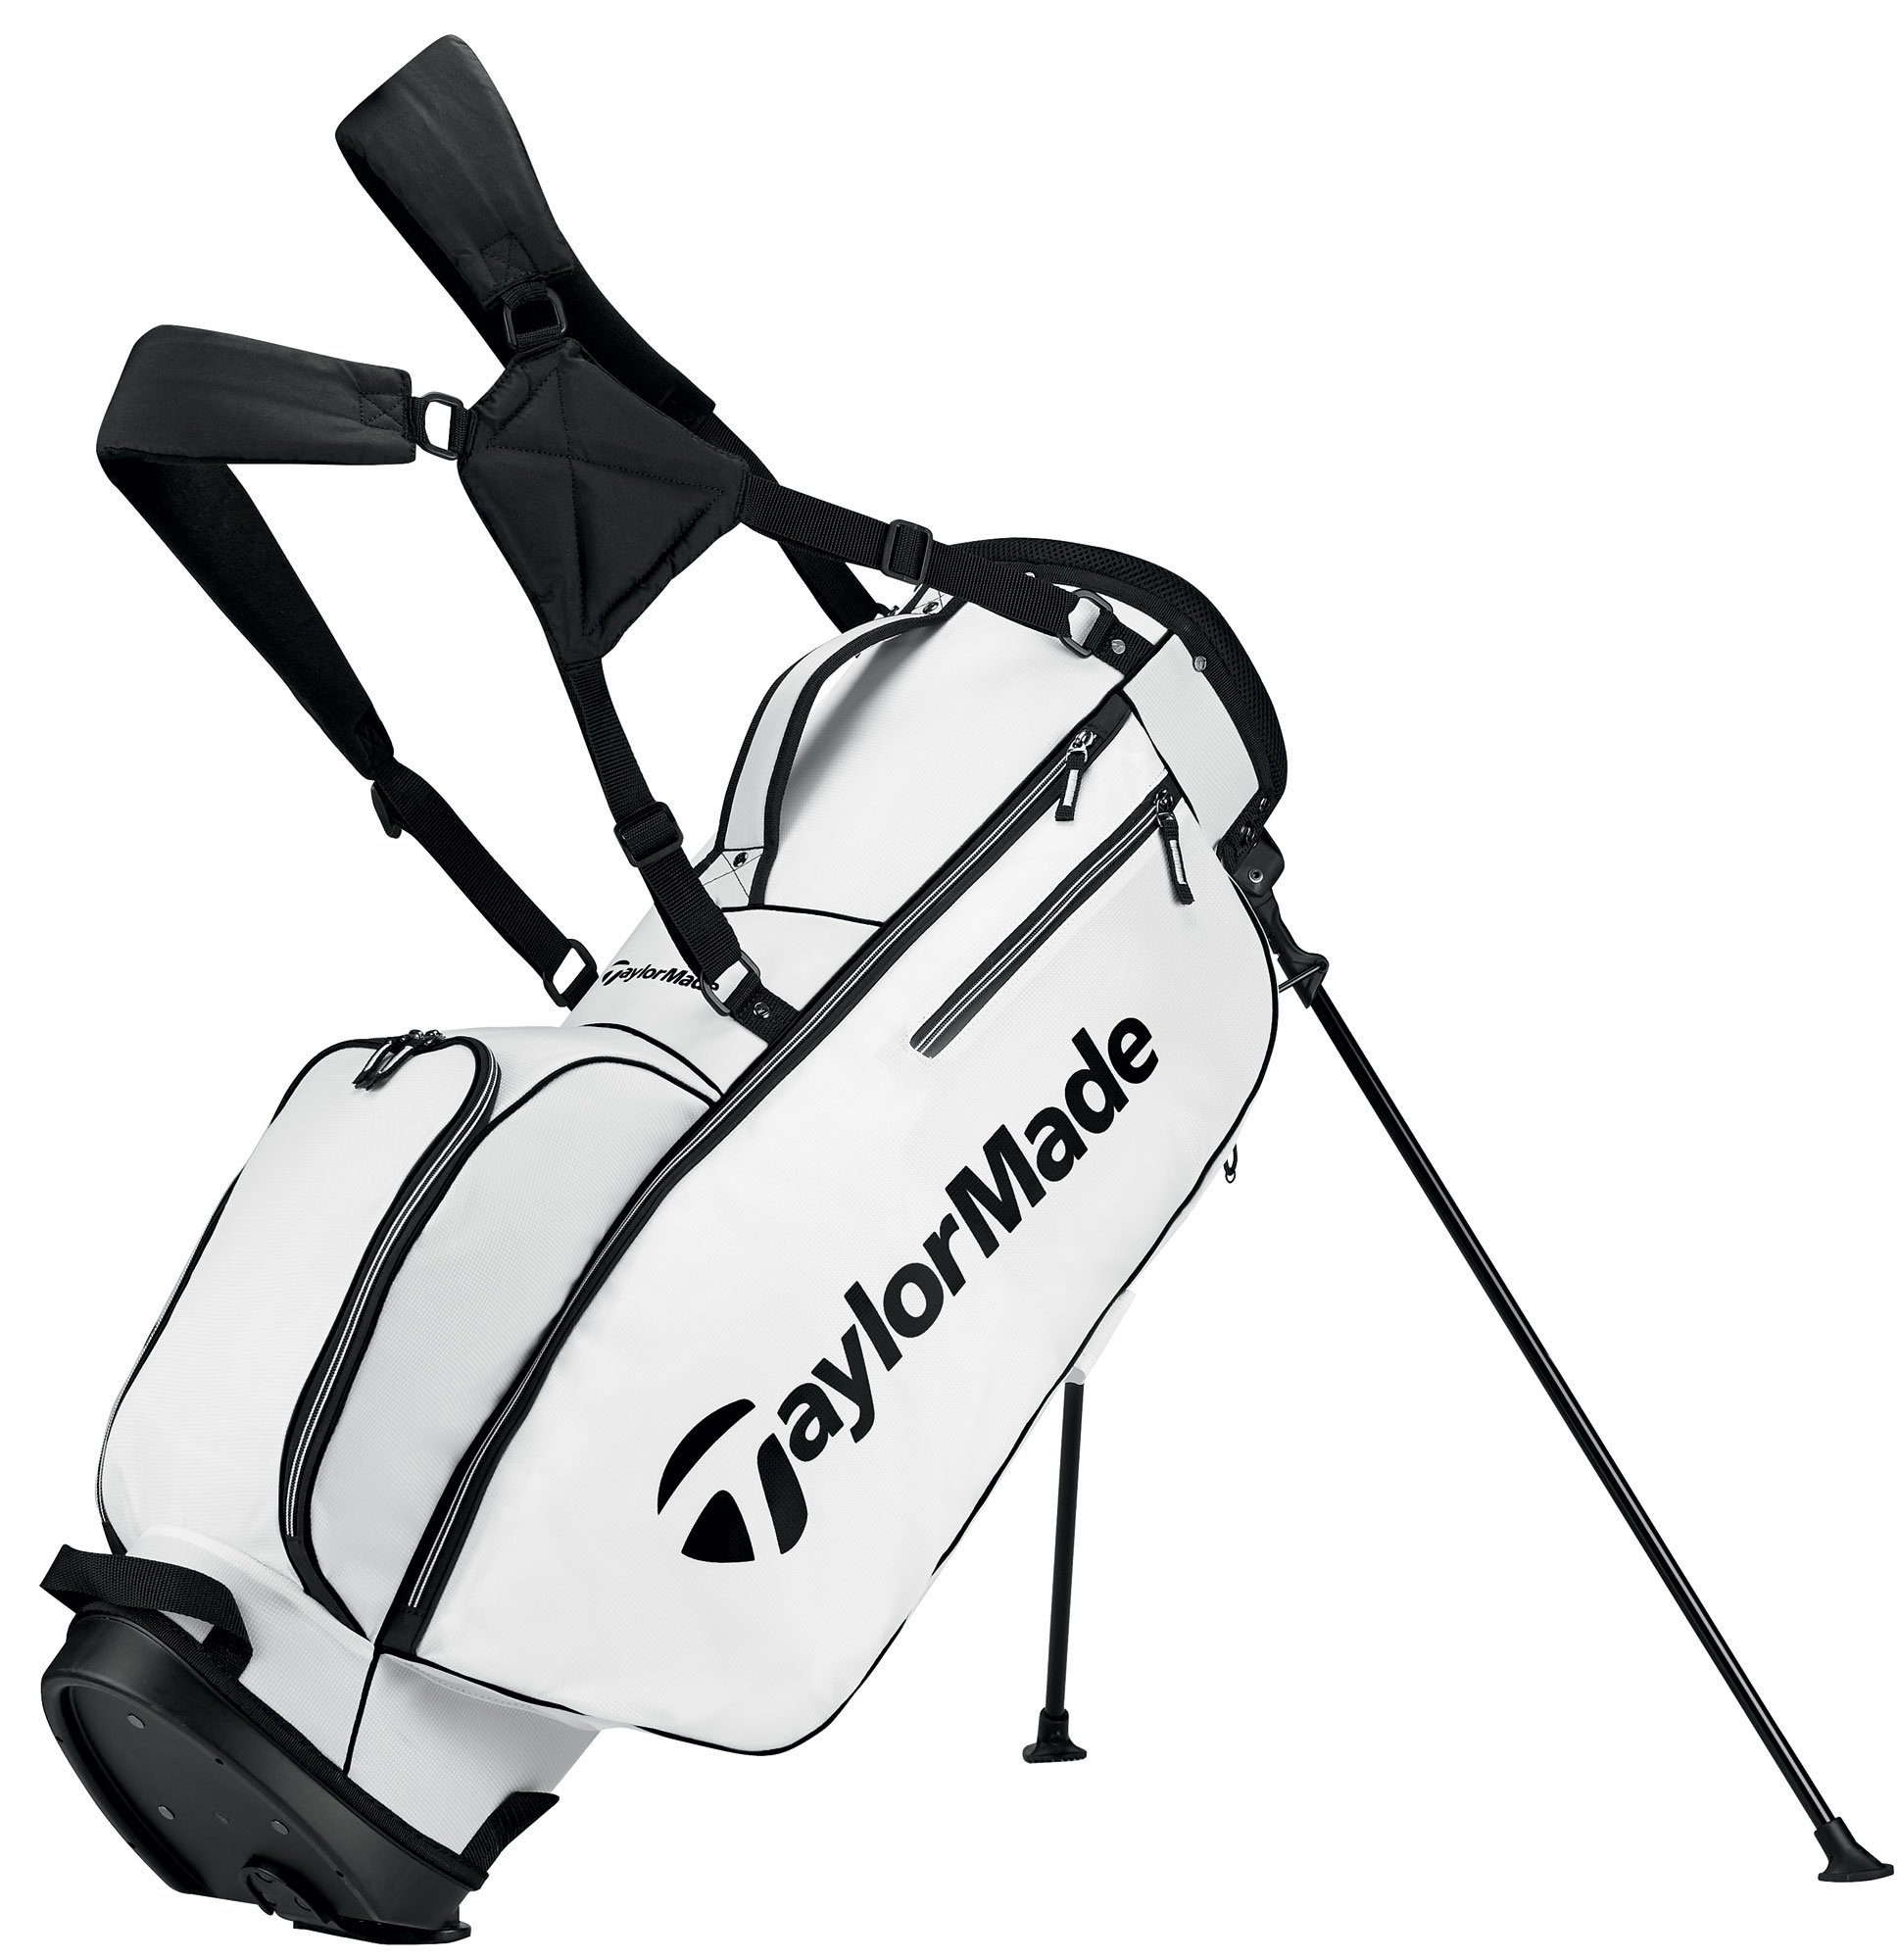 TaylorMade 2017 TM 5.0 Stand Golf Bag, White/Black by TaylorMade